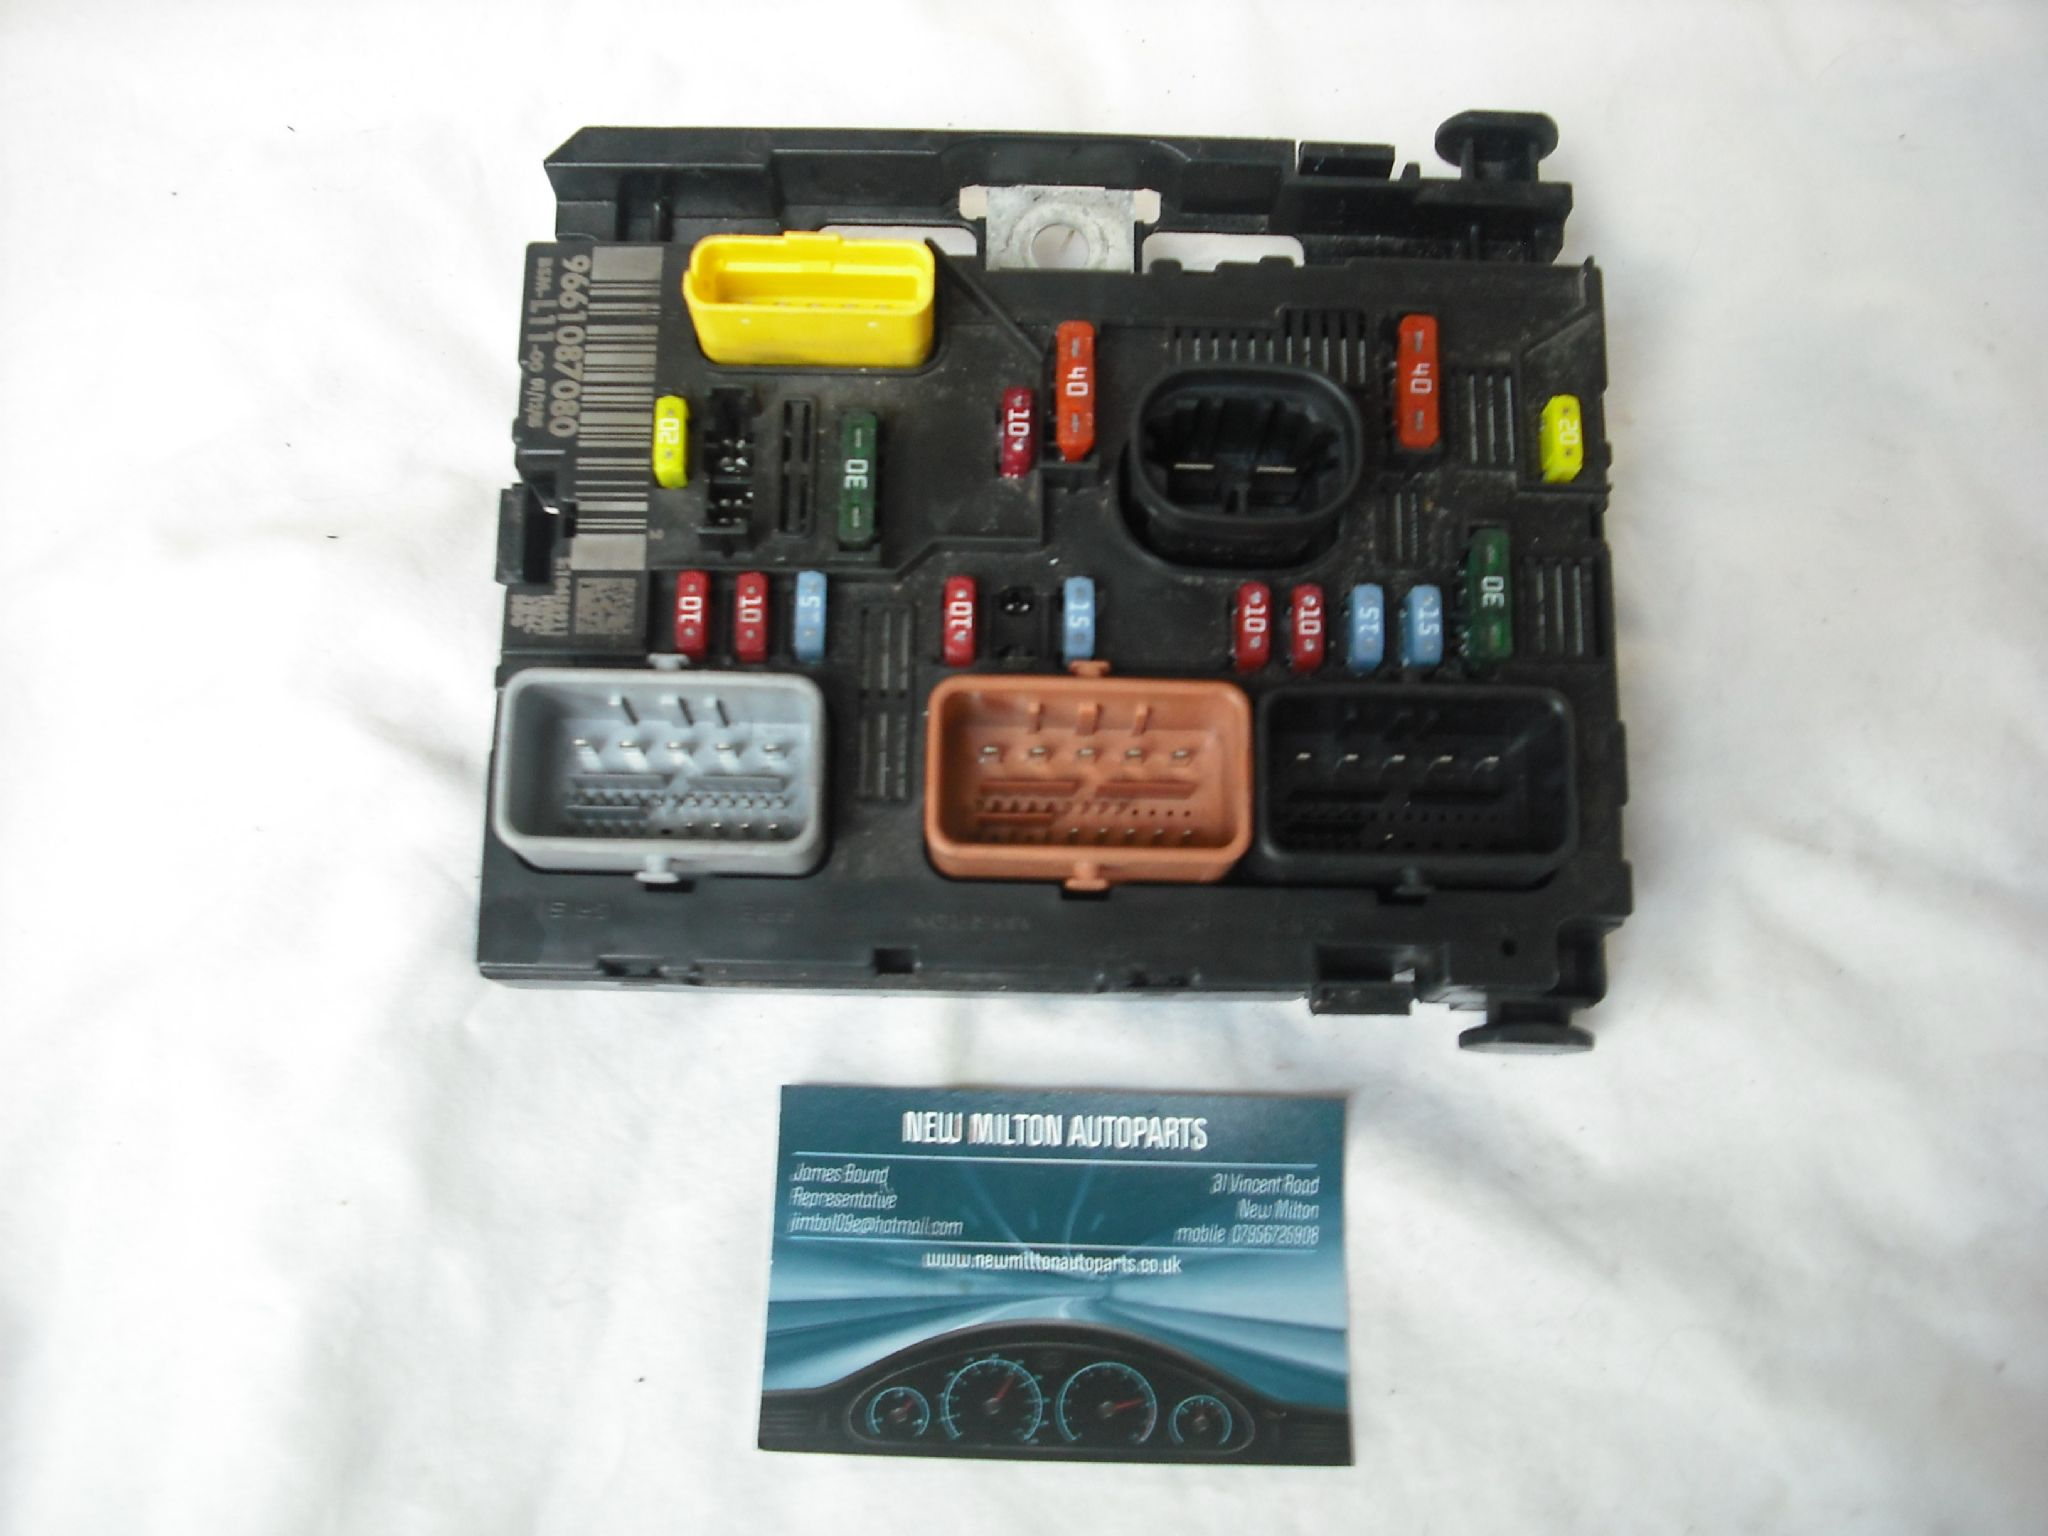 Engine Fuse Box Peugeot 307 : A genuine peugeot hdi engine bay fuse box control